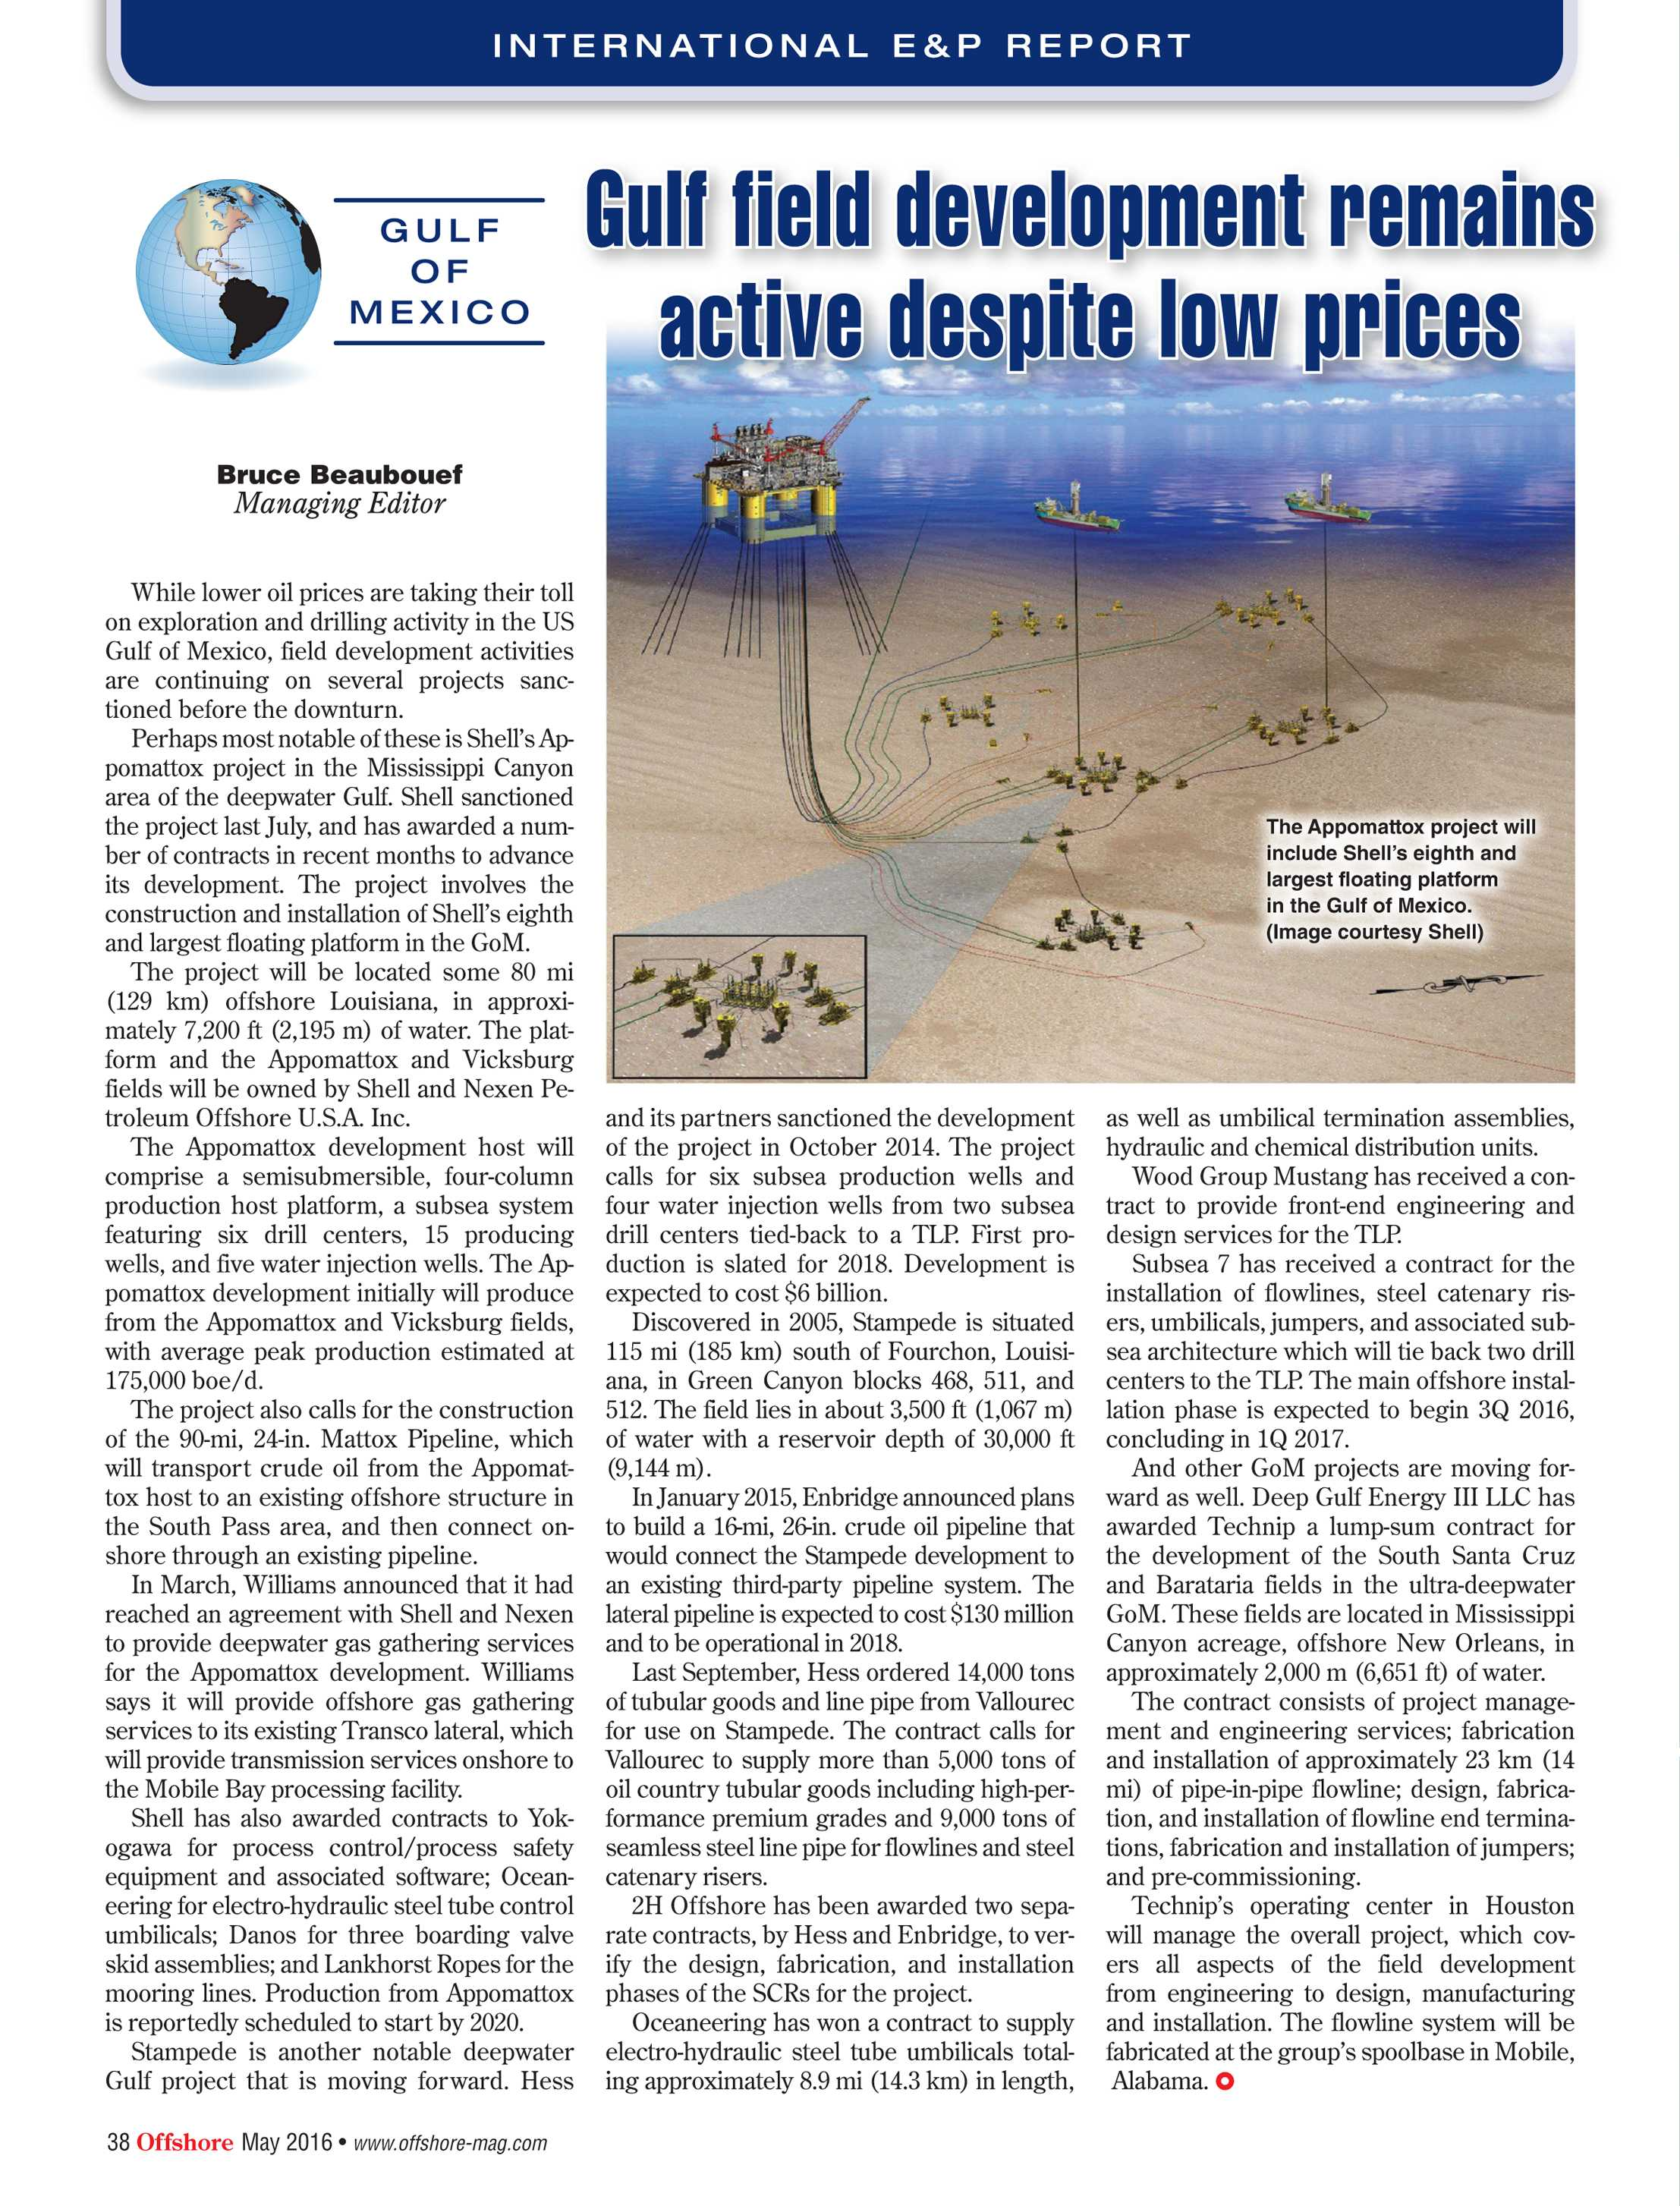 Offshore Magazine - May 2016 - page 38